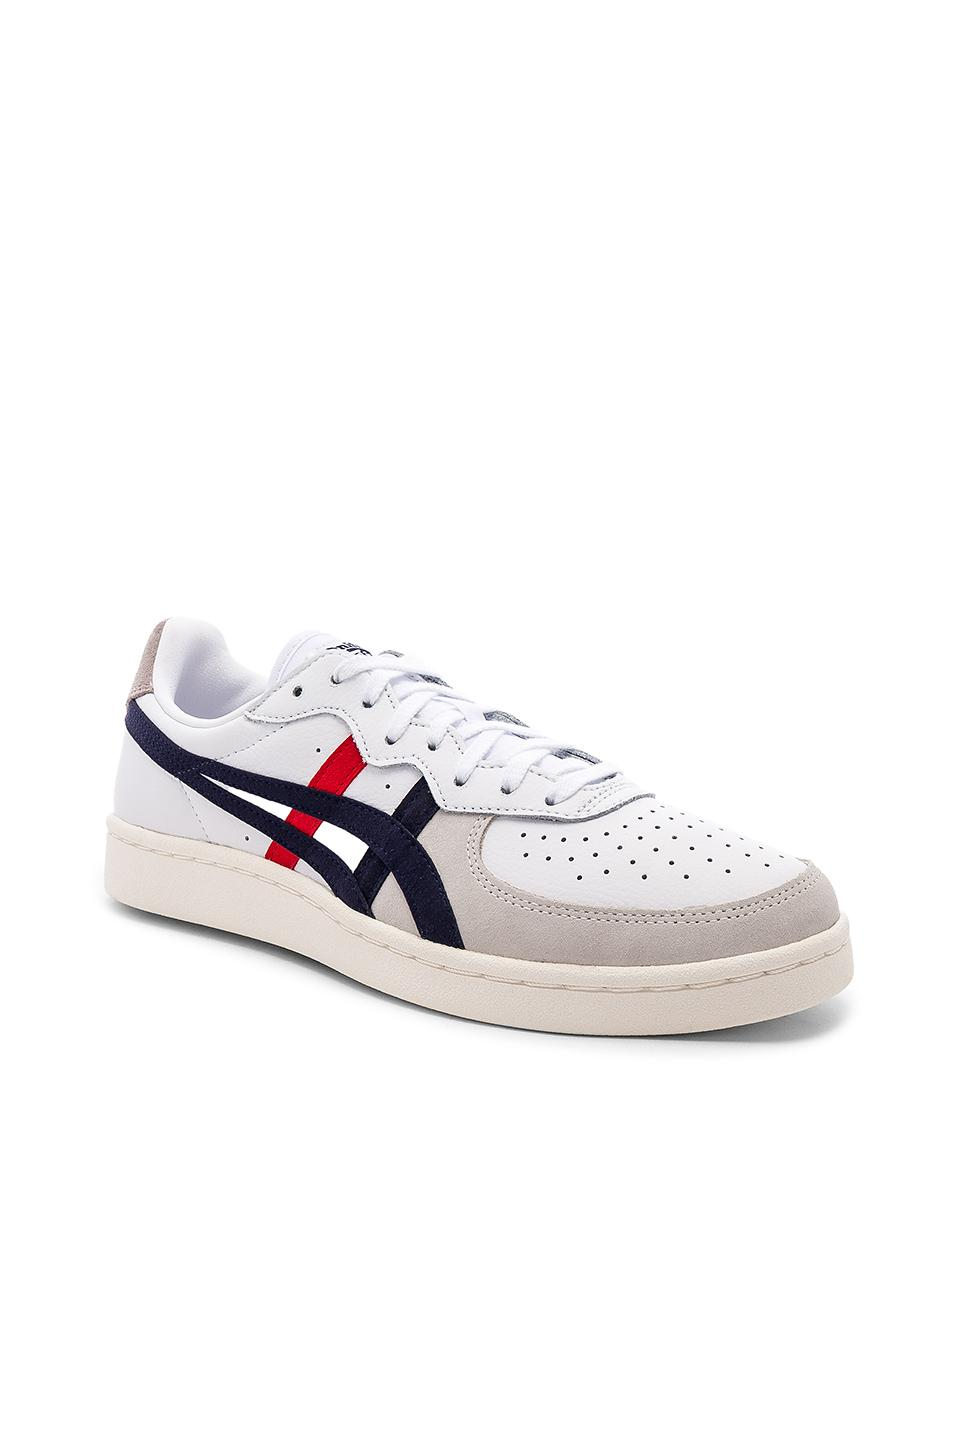 new style d8296 924a7 Onitsuka Tiger Gsm In White. in White & Peacoat